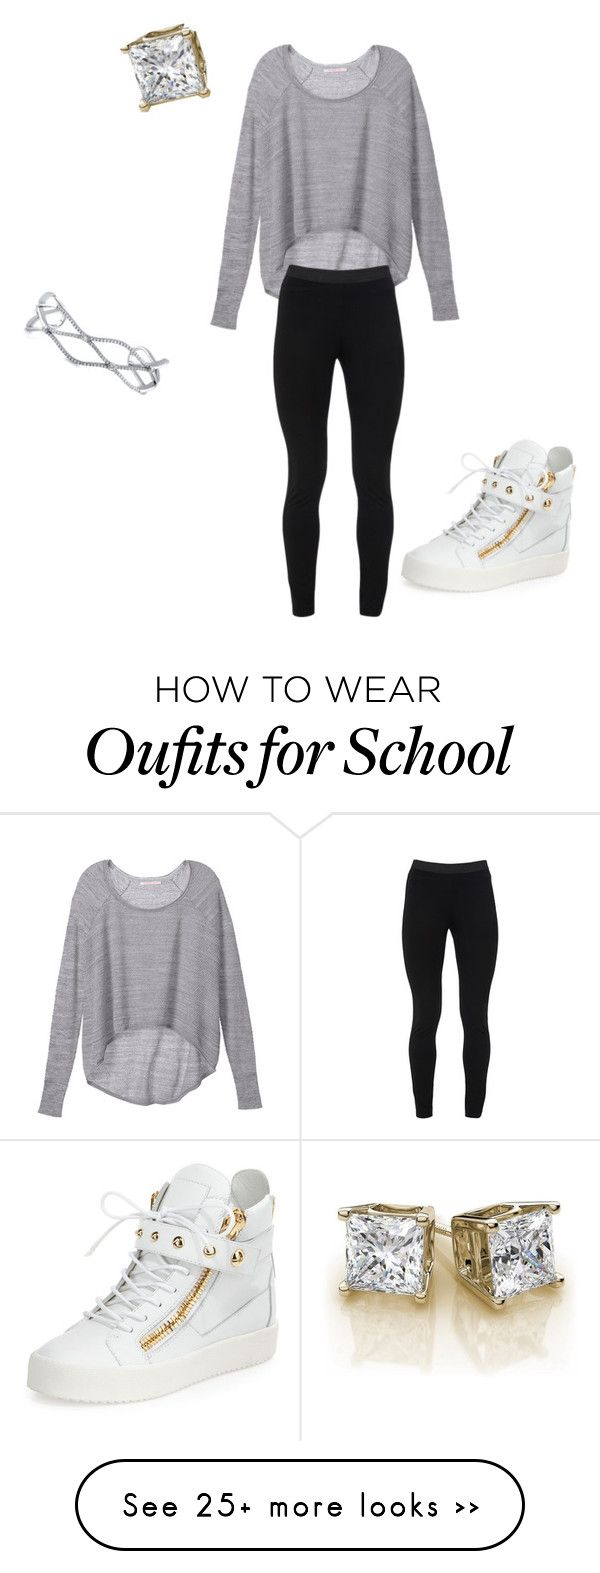 """""""back to school"""" by stylesqueen10 on Polyvore featuring Victoria's Secret, Peace of Cloth, BERRICLE and Giuseppe Zanotti"""